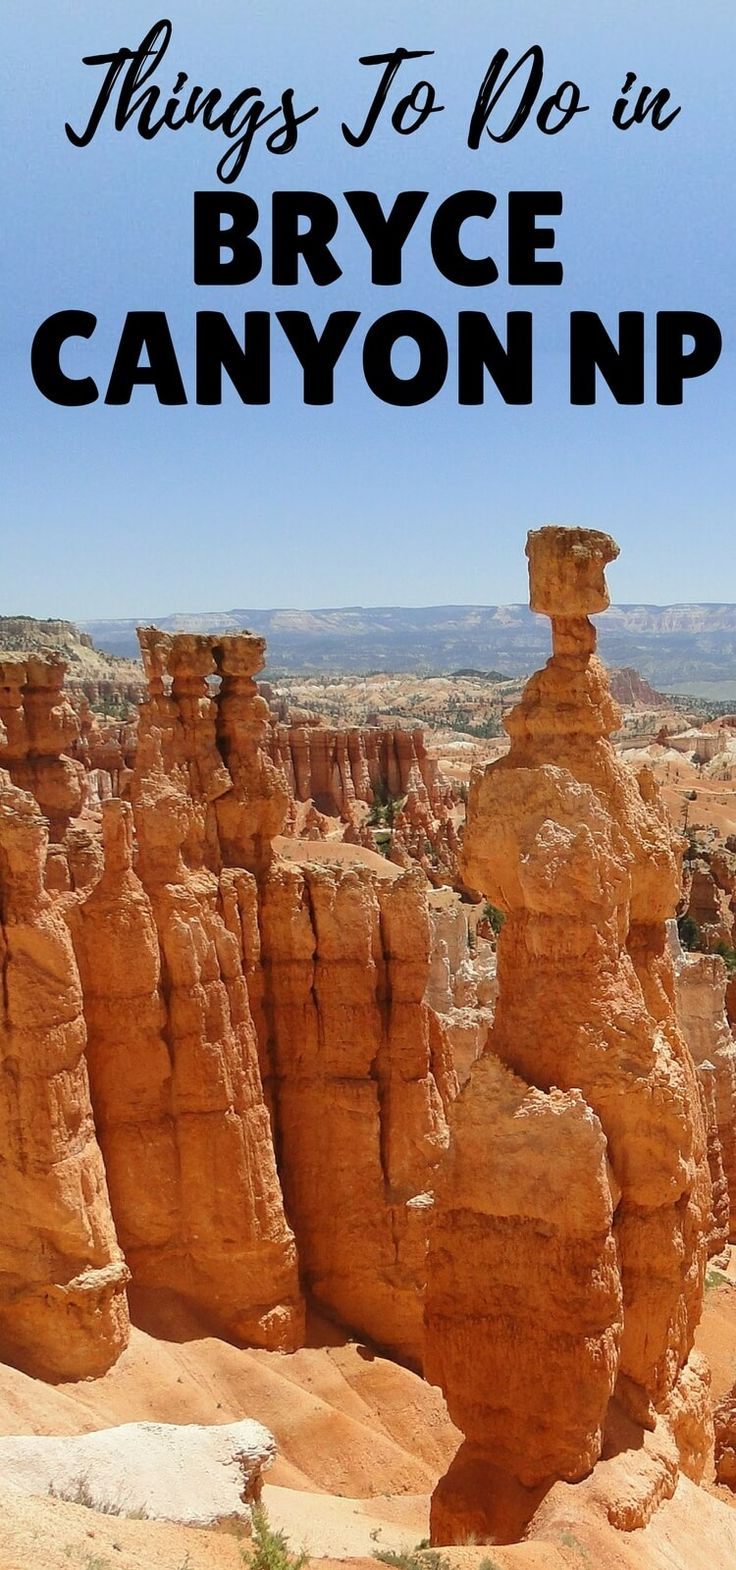 Things To Do in Bryce Canyon National Park, Utah ***************************************************************************** Bryce Canyon | Things To Do in Bryce Canyon | Bryce Canyon Things To Do | Bryce Canyon Points of Interest | Bryce Canyon NP Things To Do | Things To Do Bryce Canyon NP | Best Time To Visit Bryce Canyon | Where to stay at Bryce Canyone NP | Bryce Canyon Travel Guide